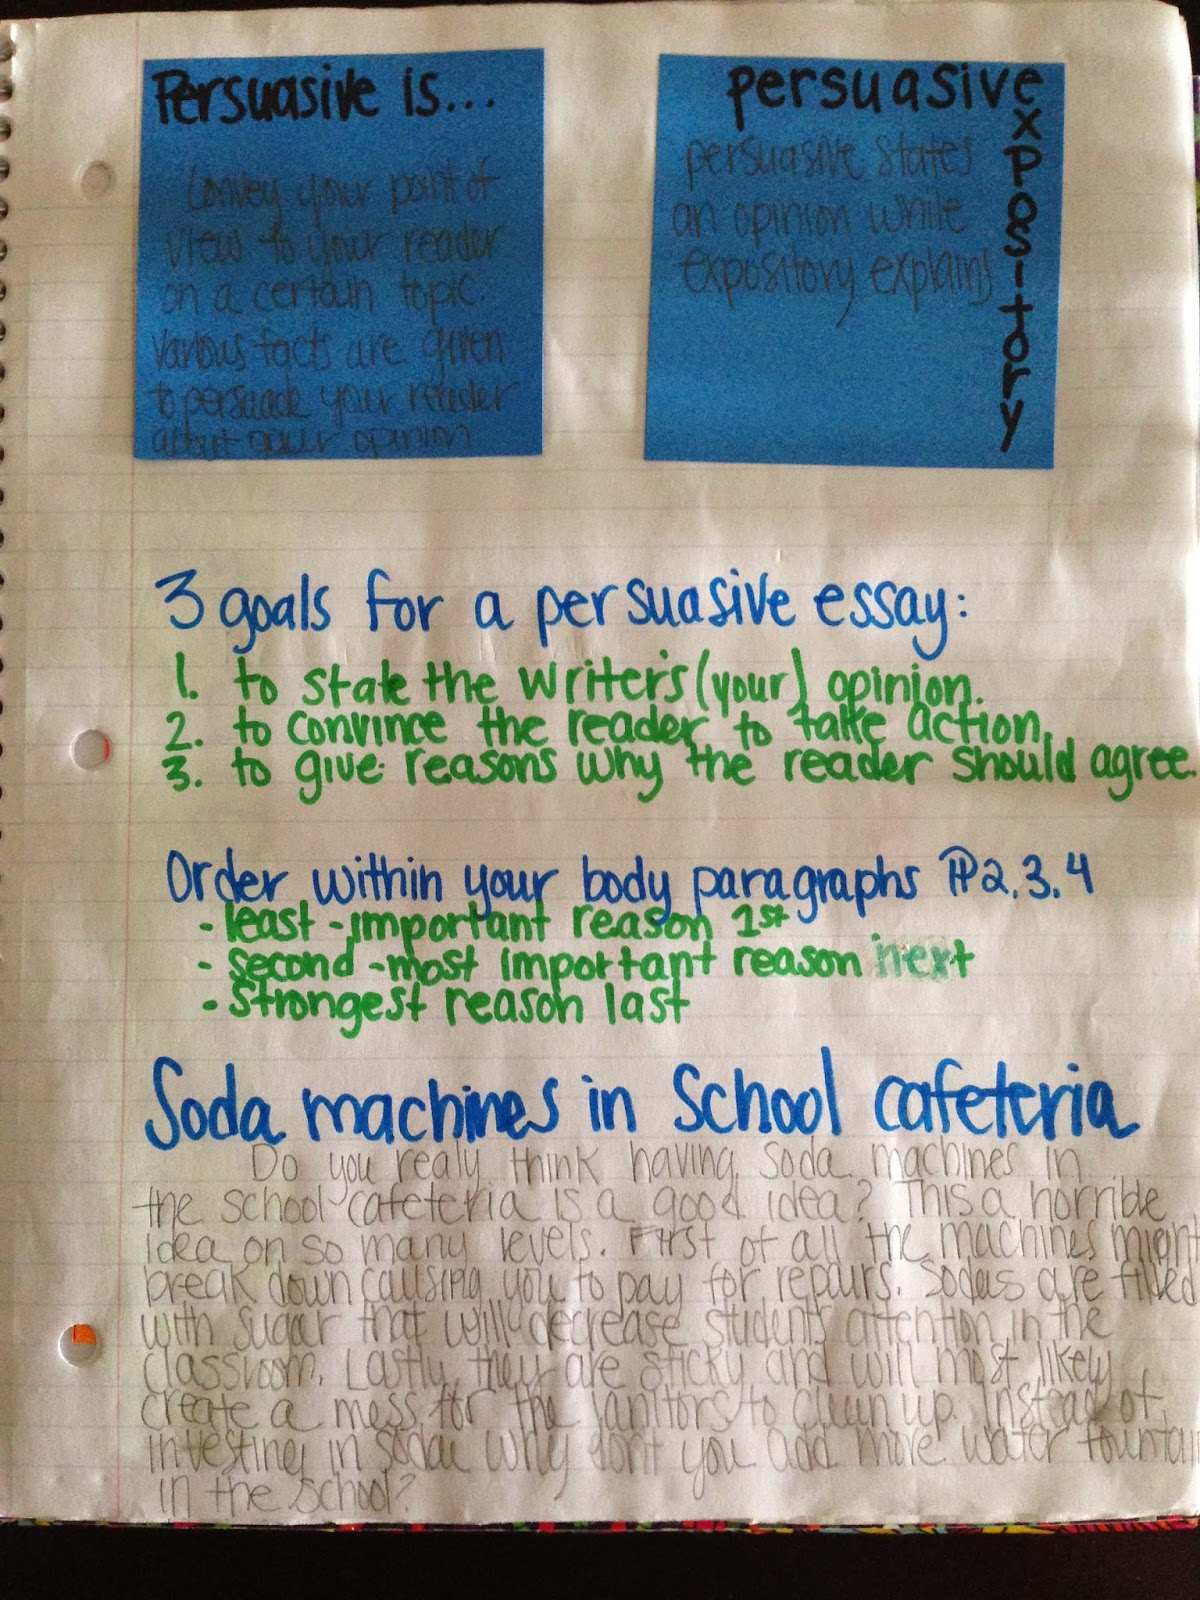 persuasive essays soda My persuasive essay gulp gulp i just can't get enough of this delicious soda it is good anywhere at the house, in the car, or at the store, yum.